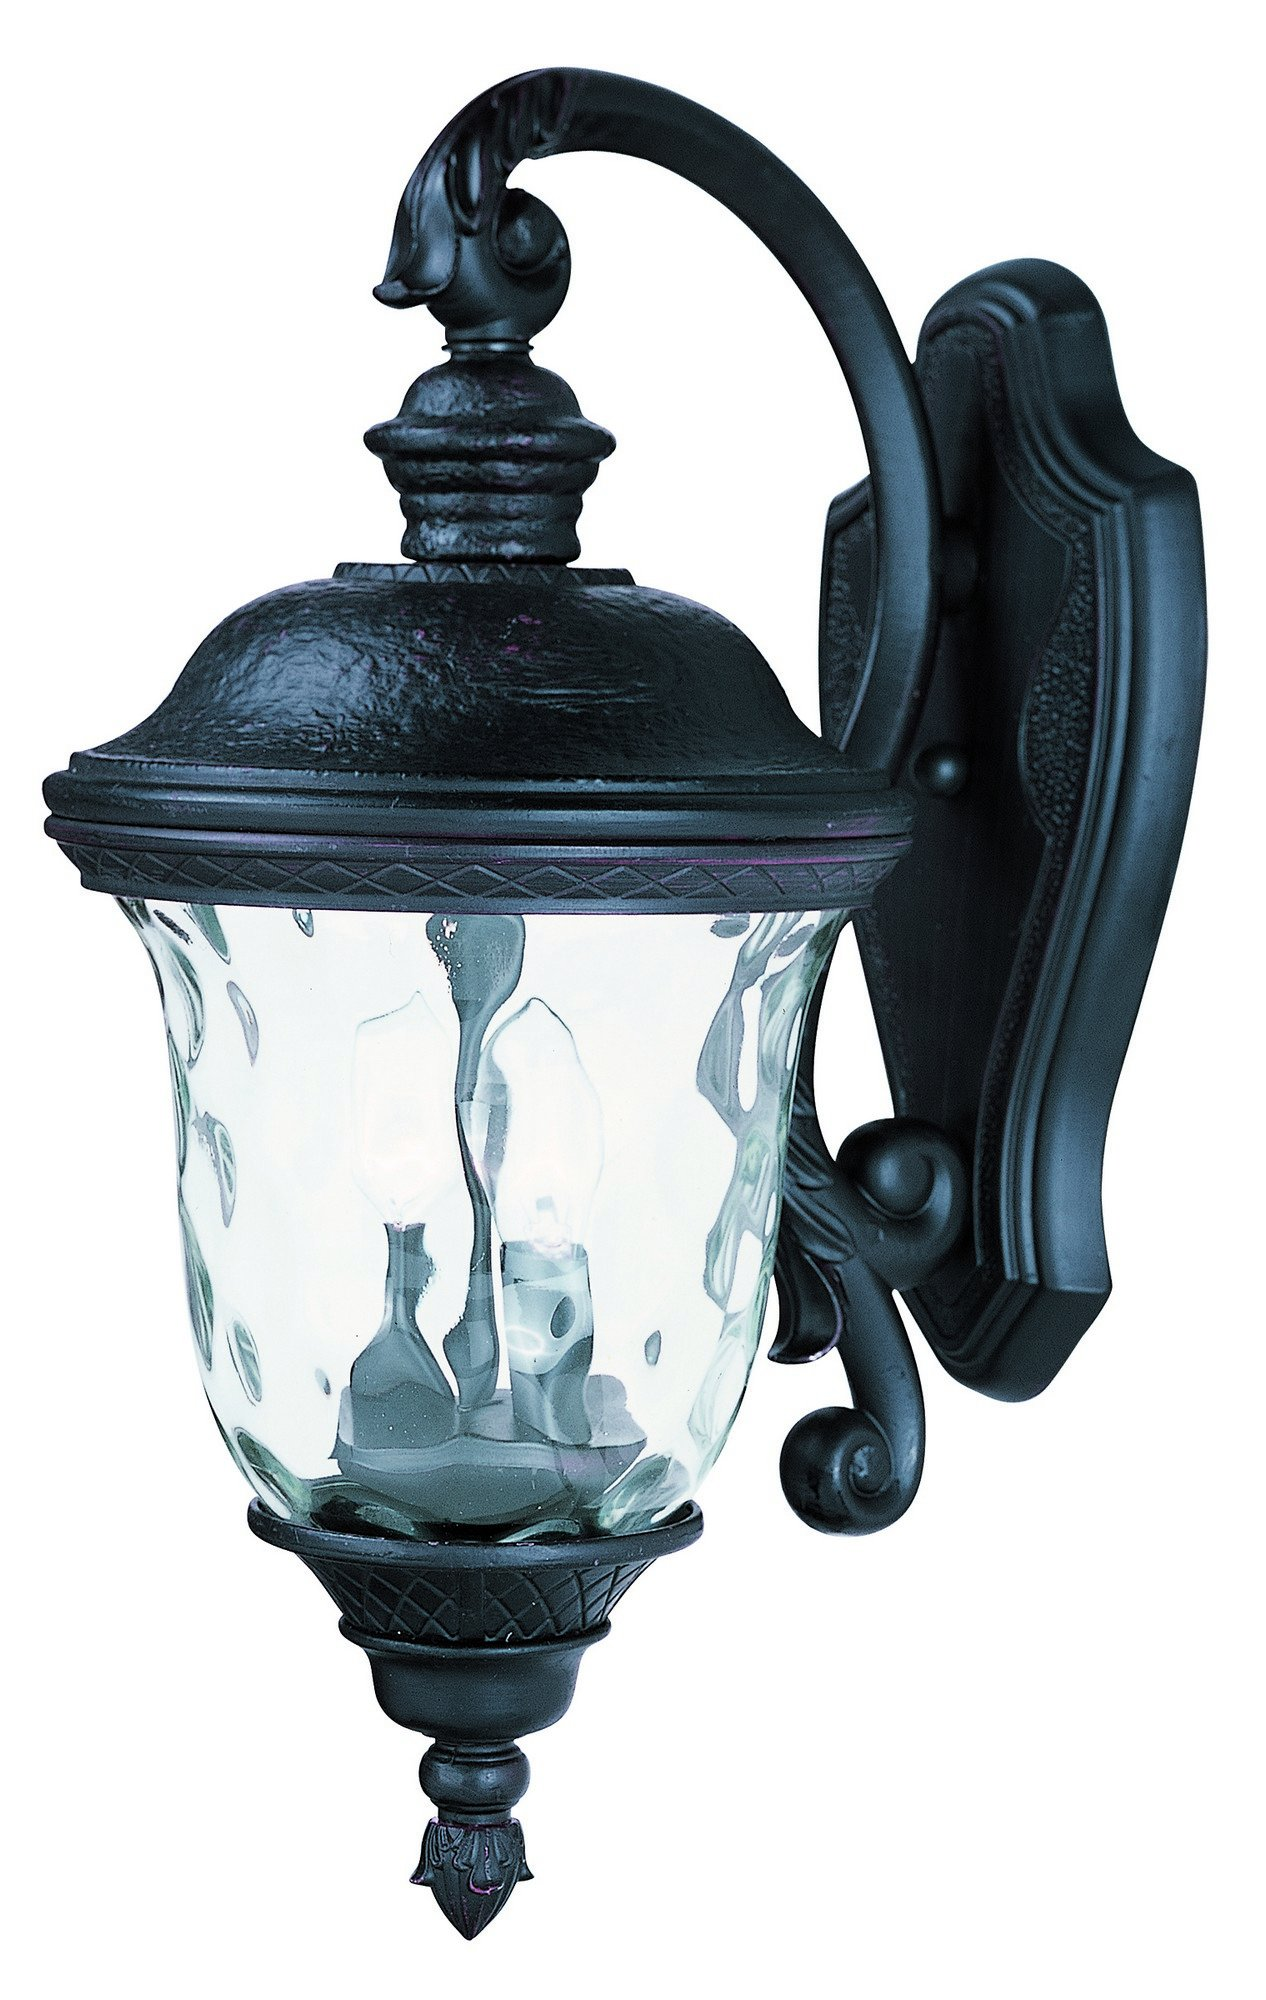 Maxim Lighting 3496WGOB Carriage House DC 2-Light Top Mount Outdoor 20-Inch Wall Lantern, Oriental Bronze Finish - Finish: oriental Bronze Glass finish: water glass Bulb Type: Ca incandescent - patio, outdoor-lights, outdoor-decor - 81z0bVyLETL -